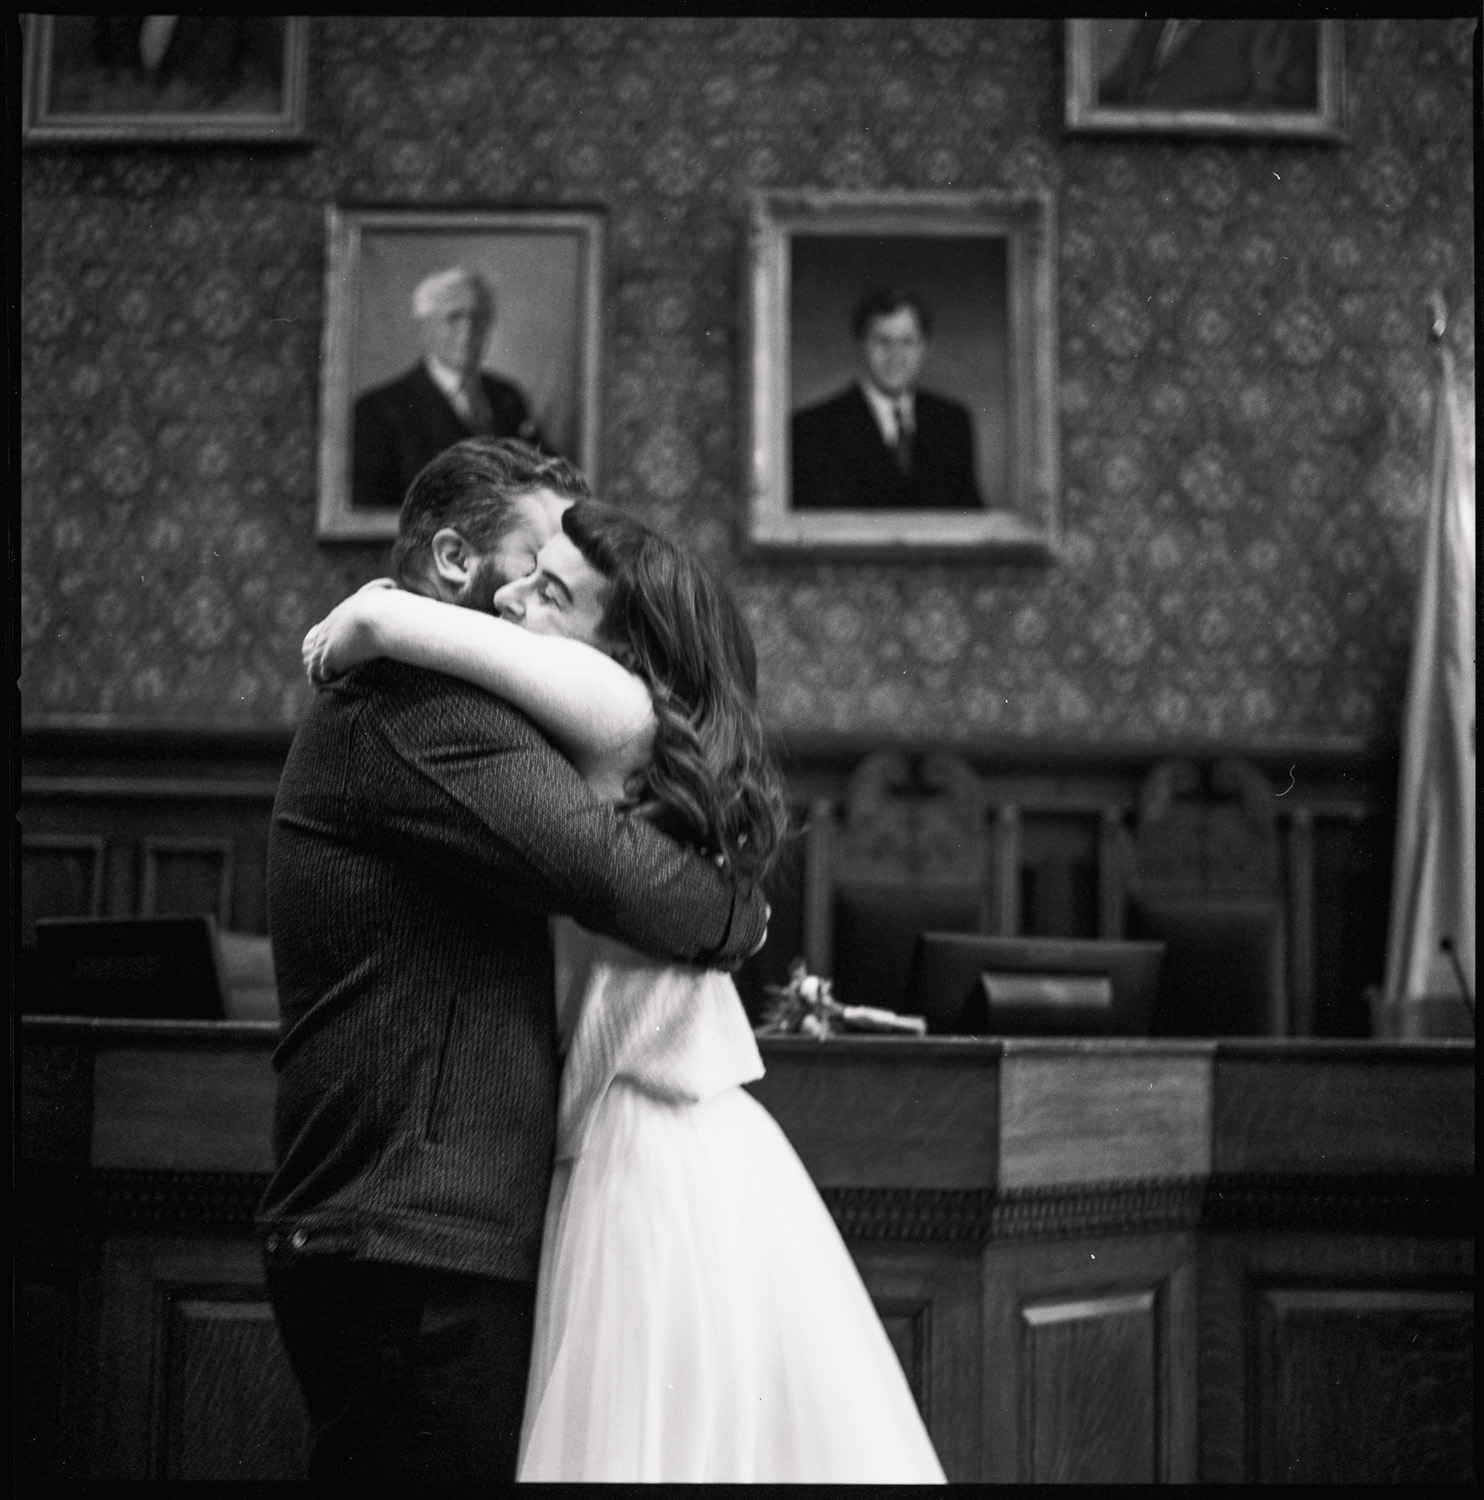 Spring_Cambridge_City_Hall_Wedding_Film_Photography_ 010.jpg